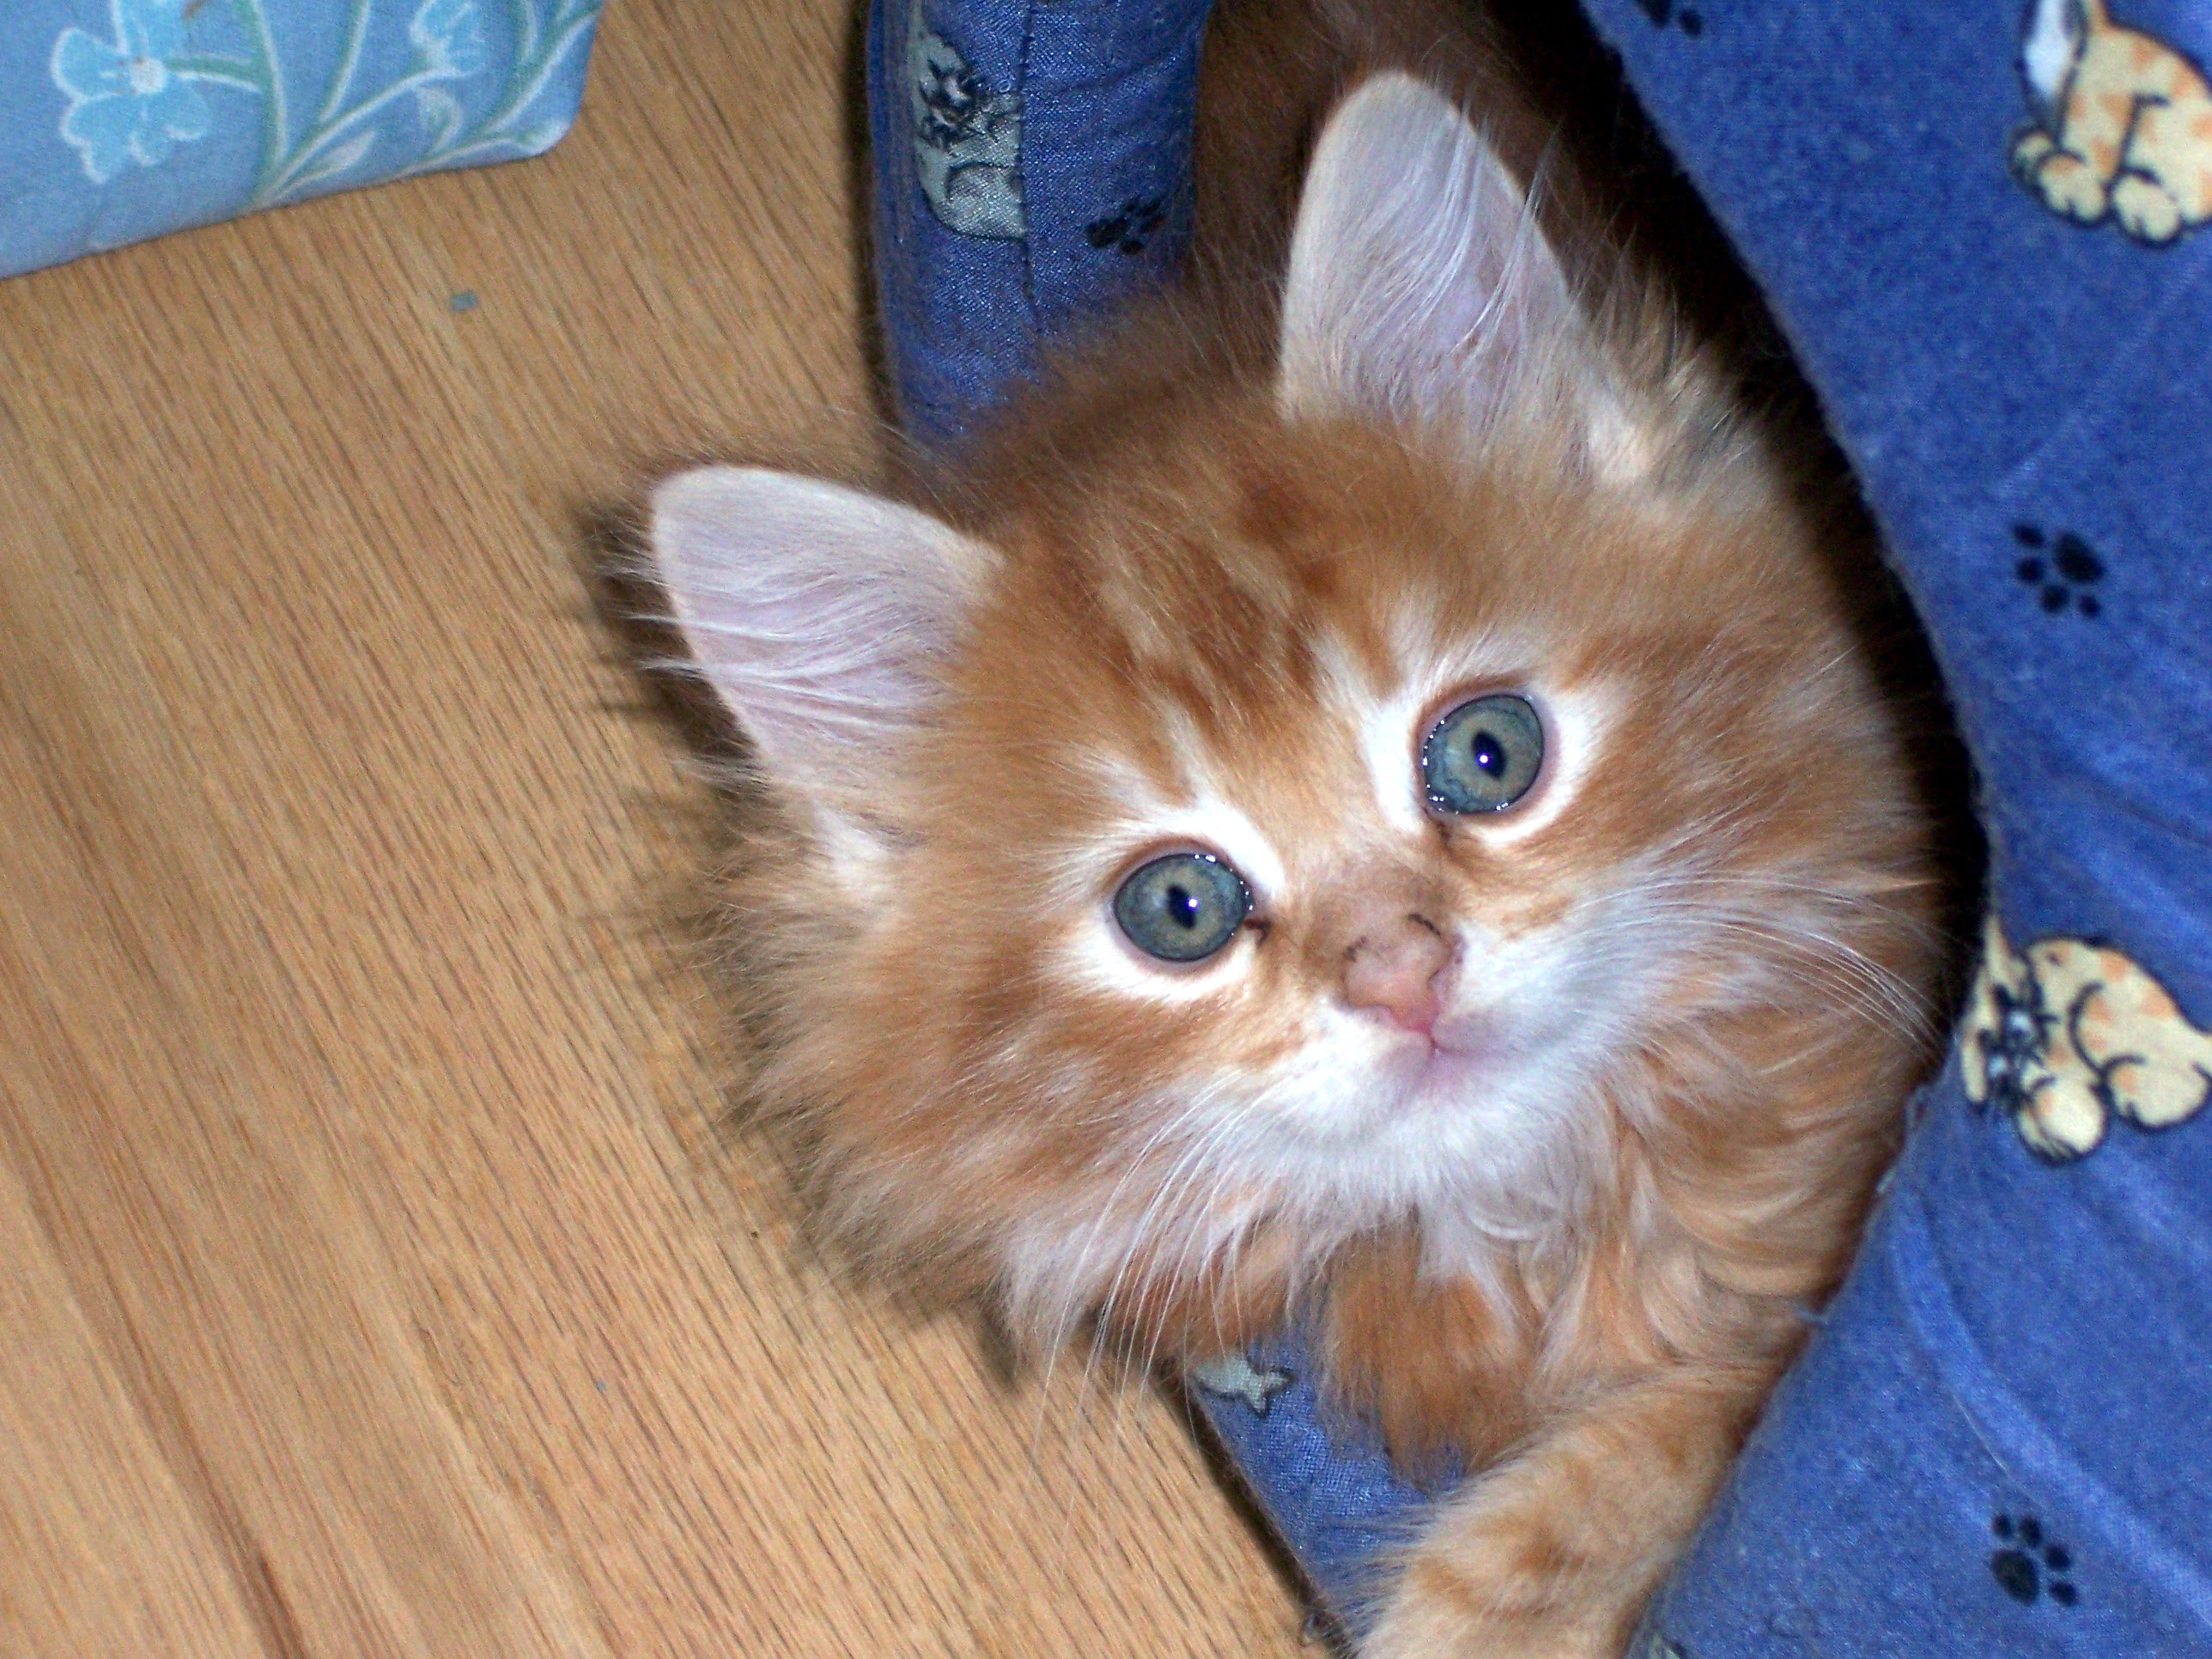 MAINE COON BABY, Bigeyes, Bspo06, Cat, Cute, HQ Photo